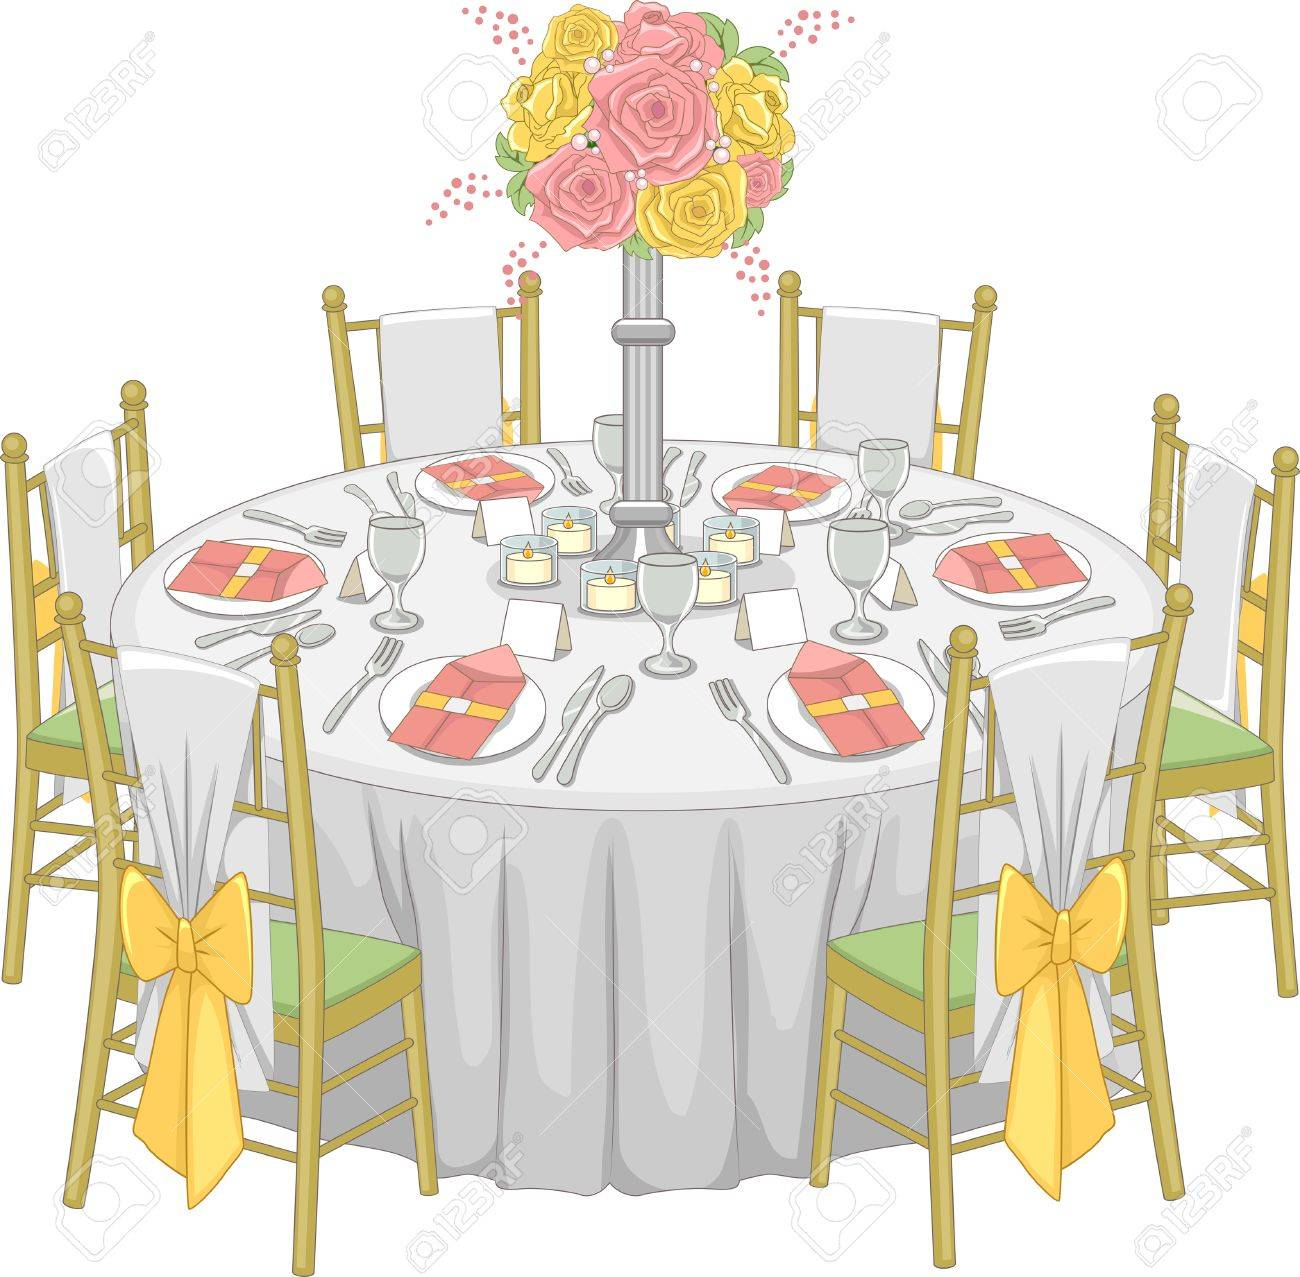 Illustration of a Formal Table Set-up at a Reception Hall Stock Vector - 29410116  sc 1 st  123RF.com & Illustration Of A Formal Table Set-up At A Reception Hall Royalty ...